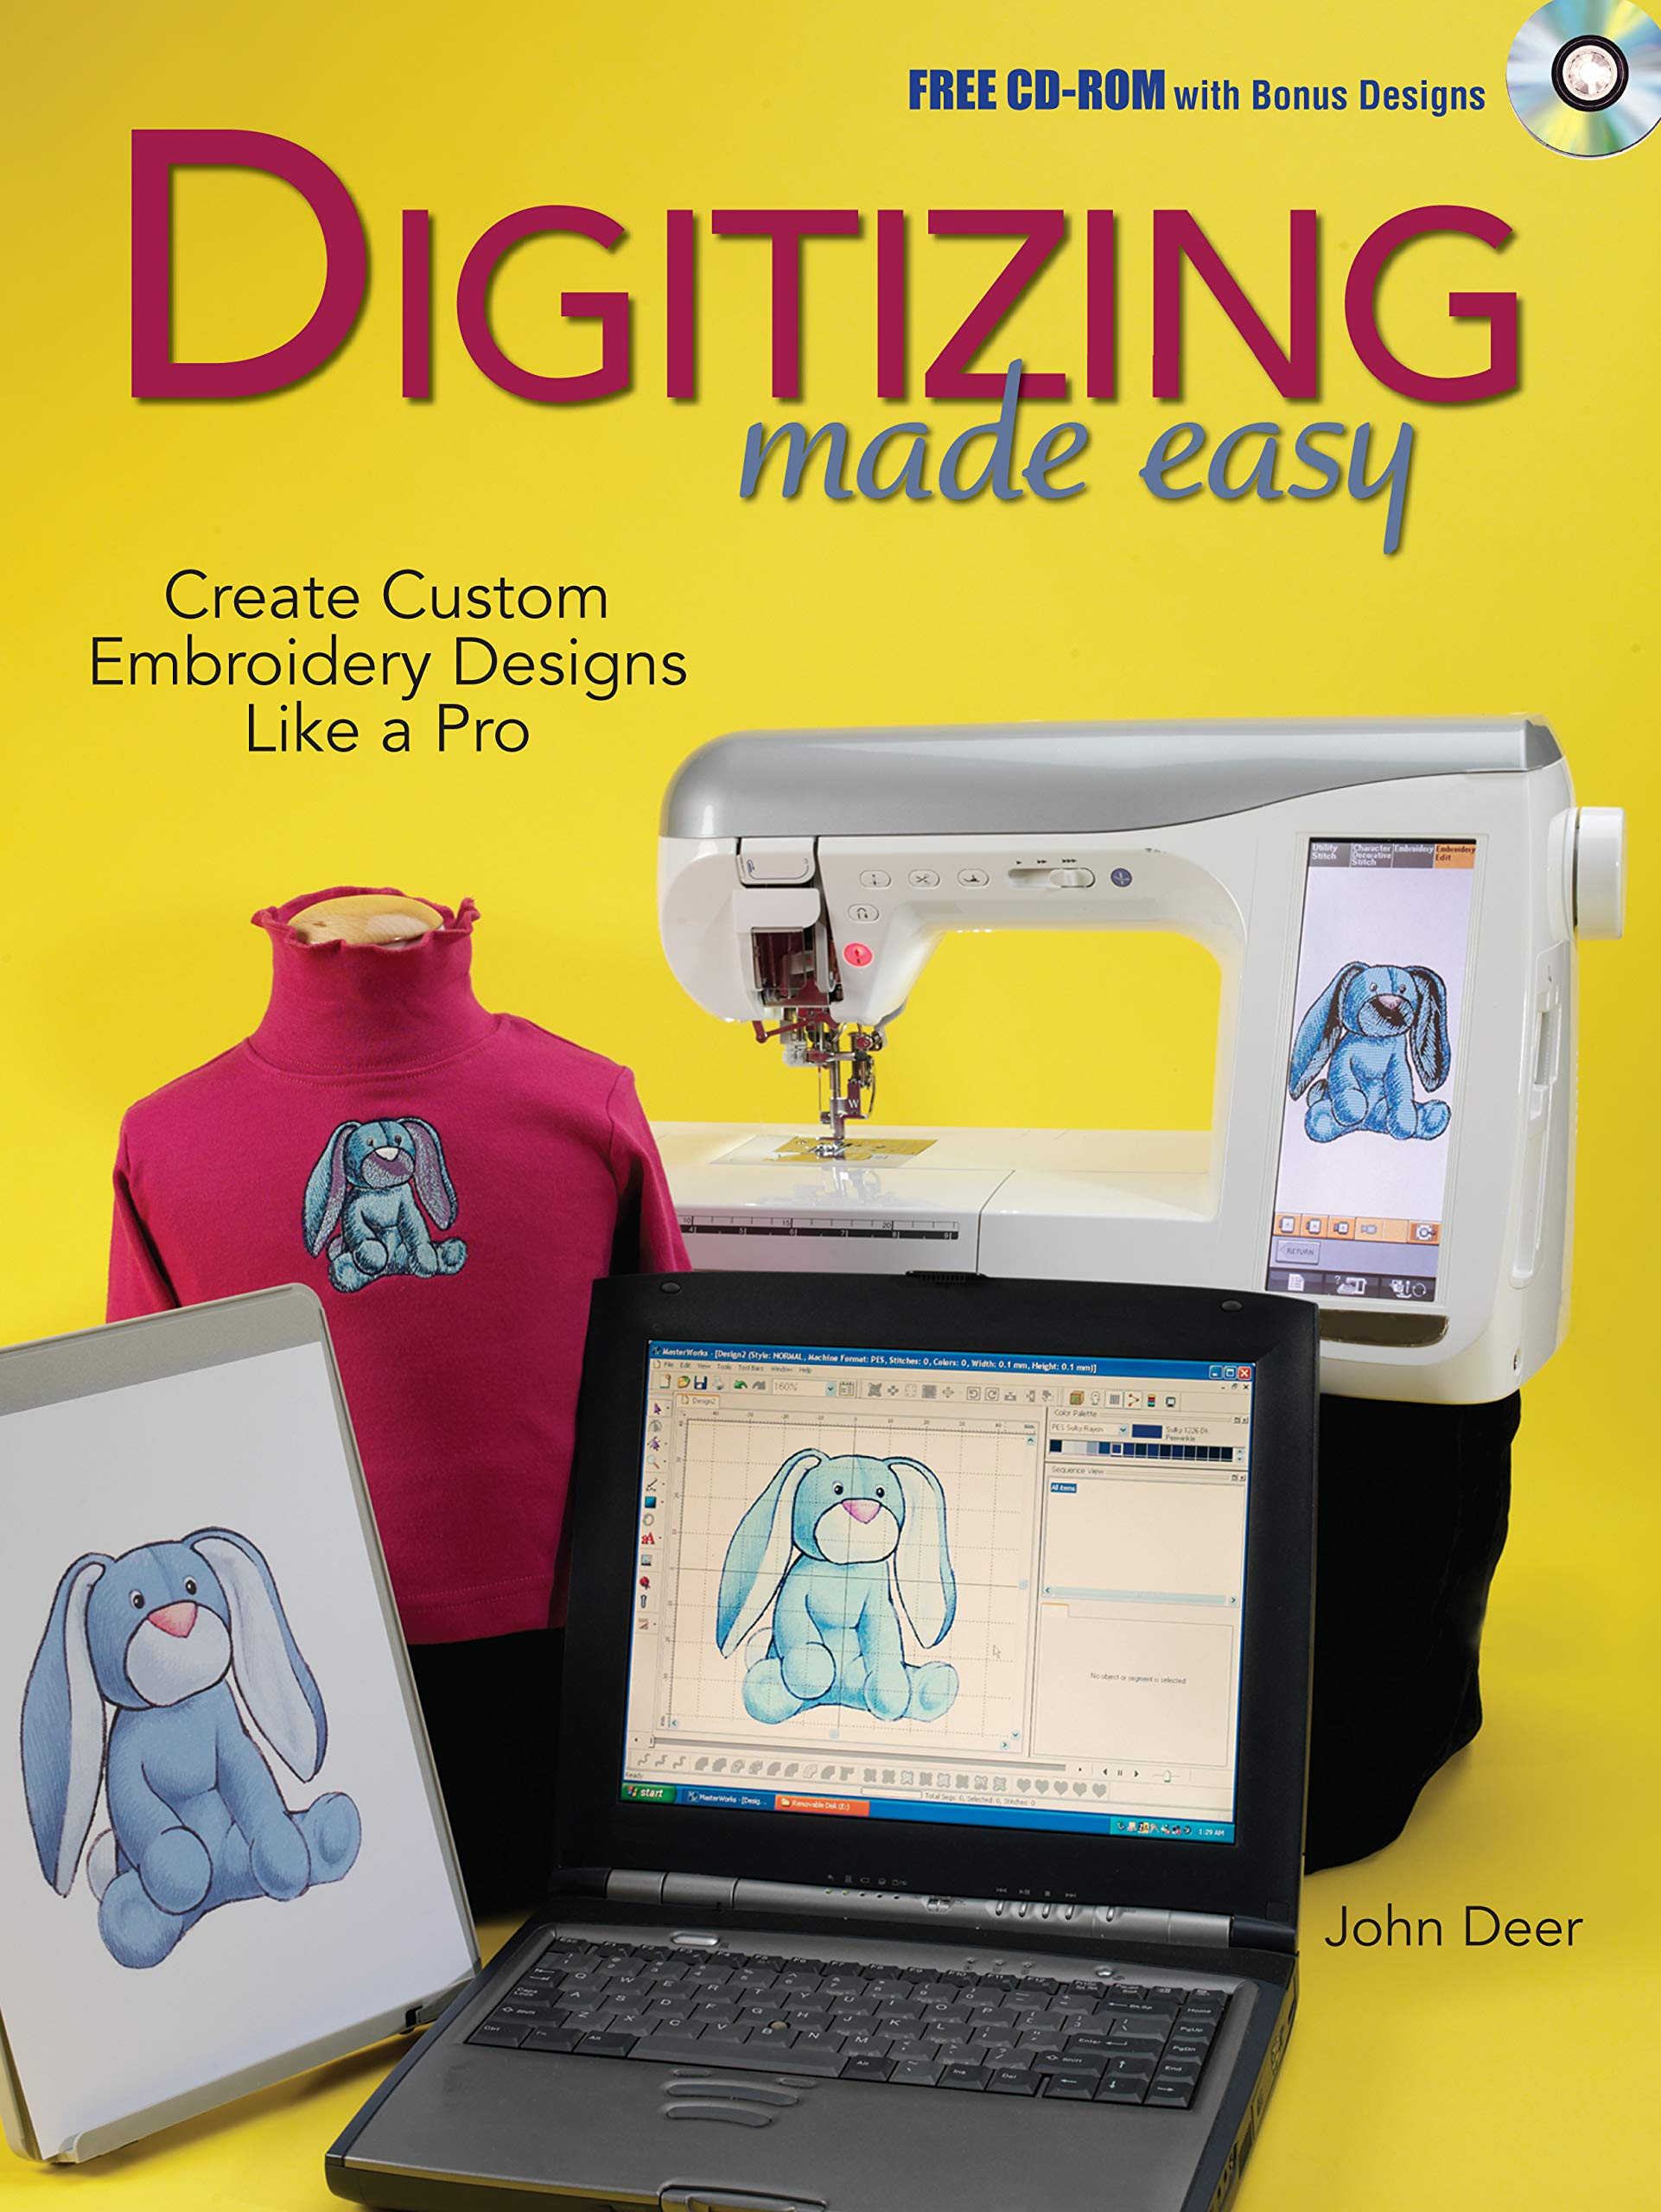 Best Utility: Digitizing Made Easy: Create Custom Designs Like A Pro